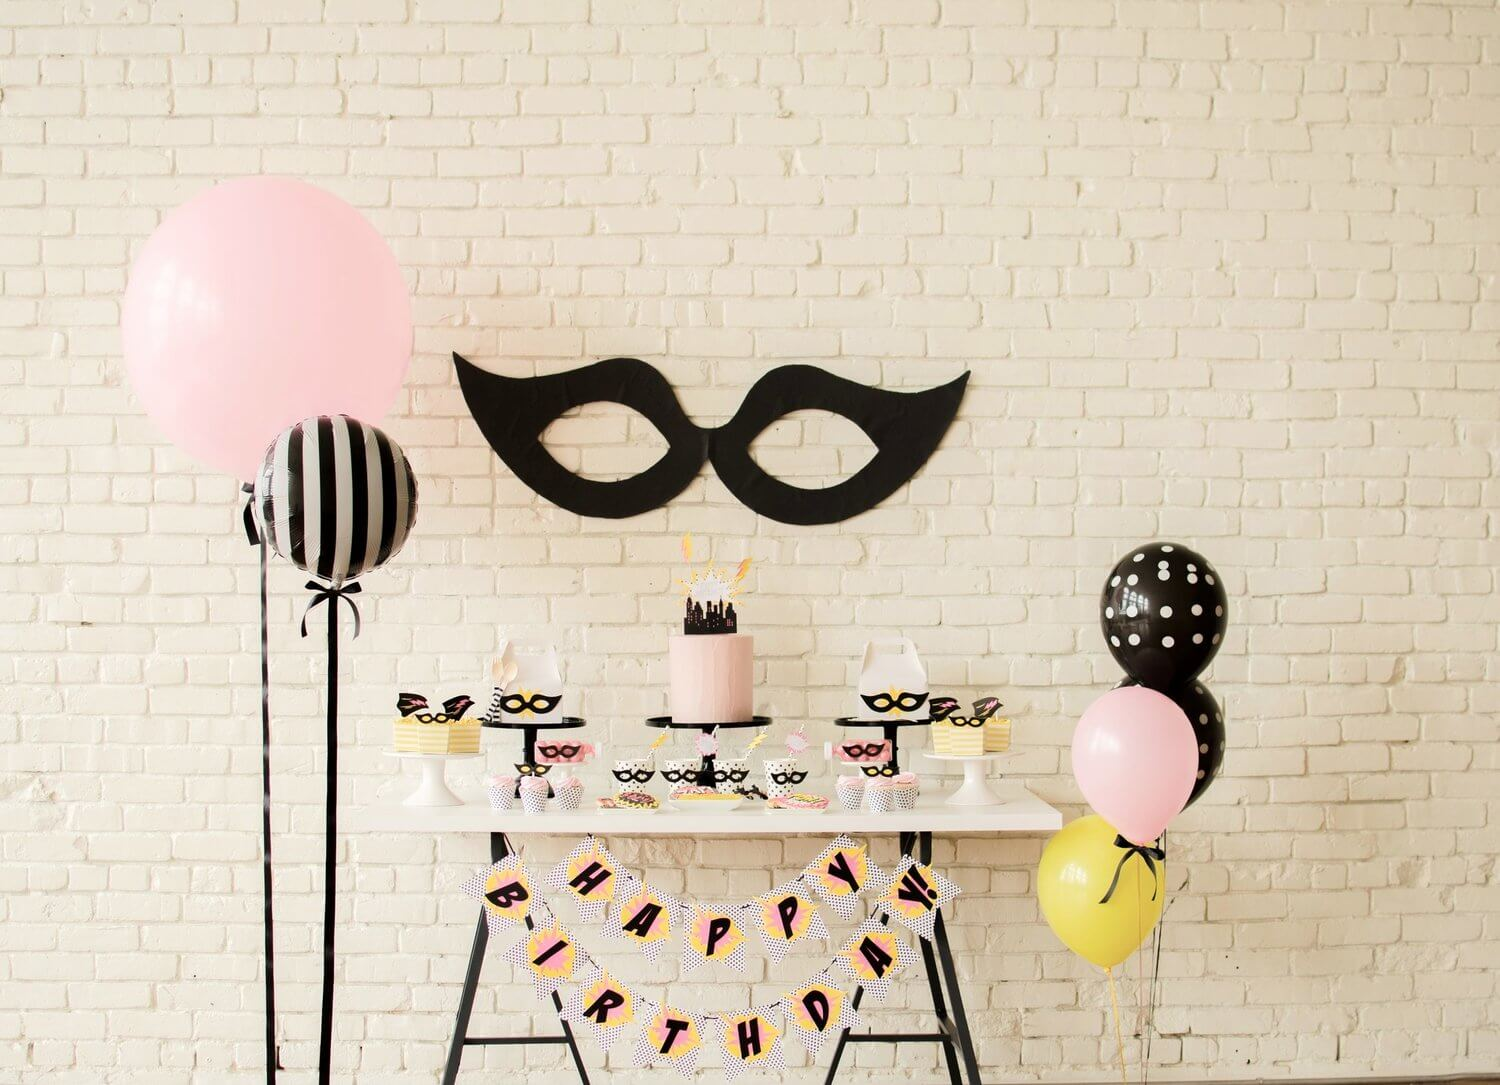 How to Plan a Superhero Birthday Party for Girls - come see all the super hero party ideas for girls including the cutest party backdrop and dessert table. Styled by Carolina of MINT Event Design in Austin Texas www.minteventdesign.com #kidspartyideas #birthdaypartyideas #superheroparty #birthdayparty #partyideas #superhero